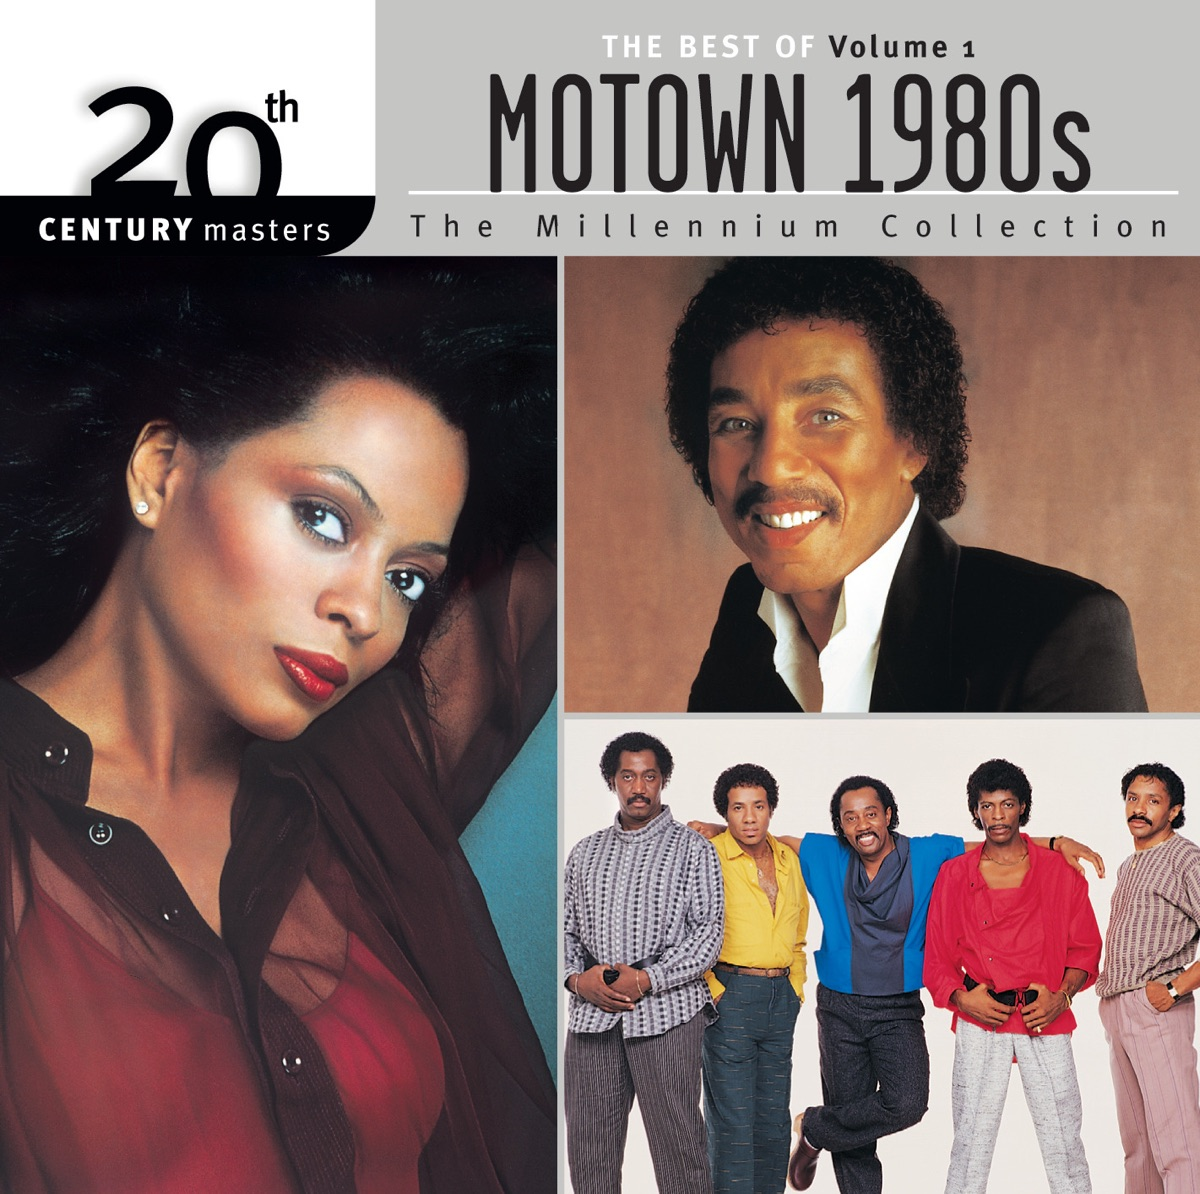 20th Century Masters - The Millennium Collection The Best of Motown 80s Vol 1 Various Artists CD cover